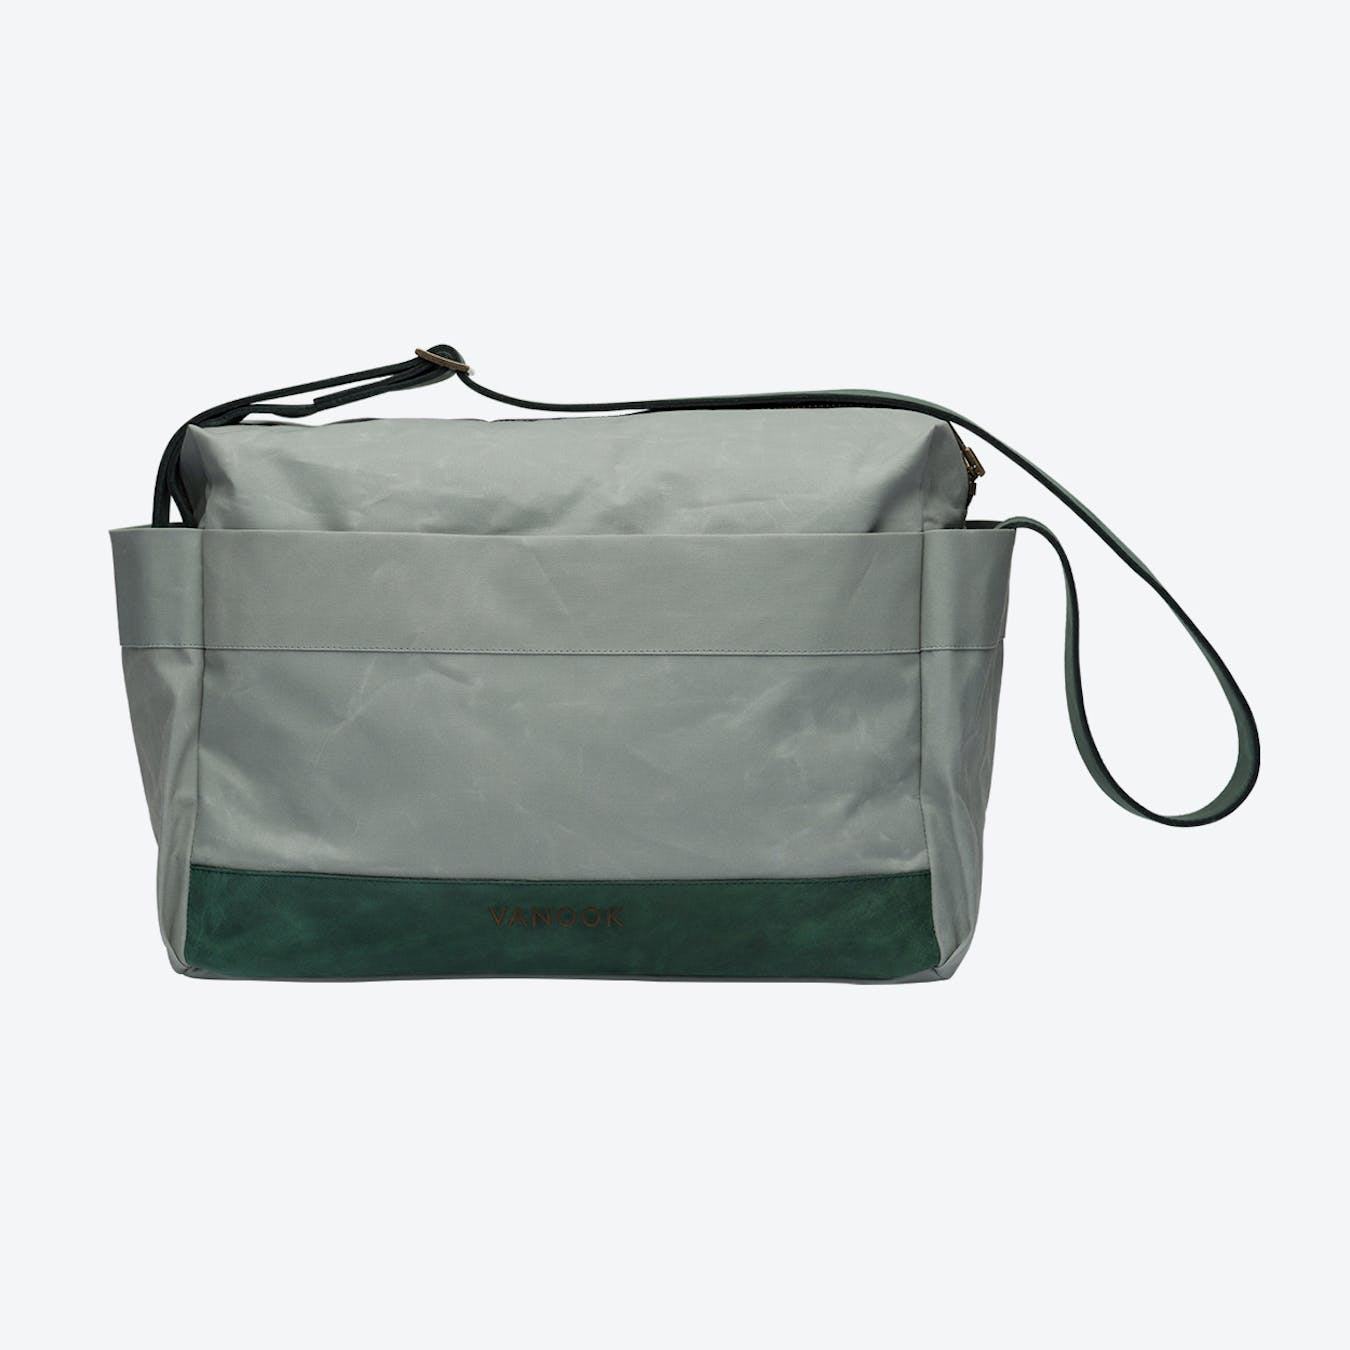 Messenger Bag in Oyster and Malachite